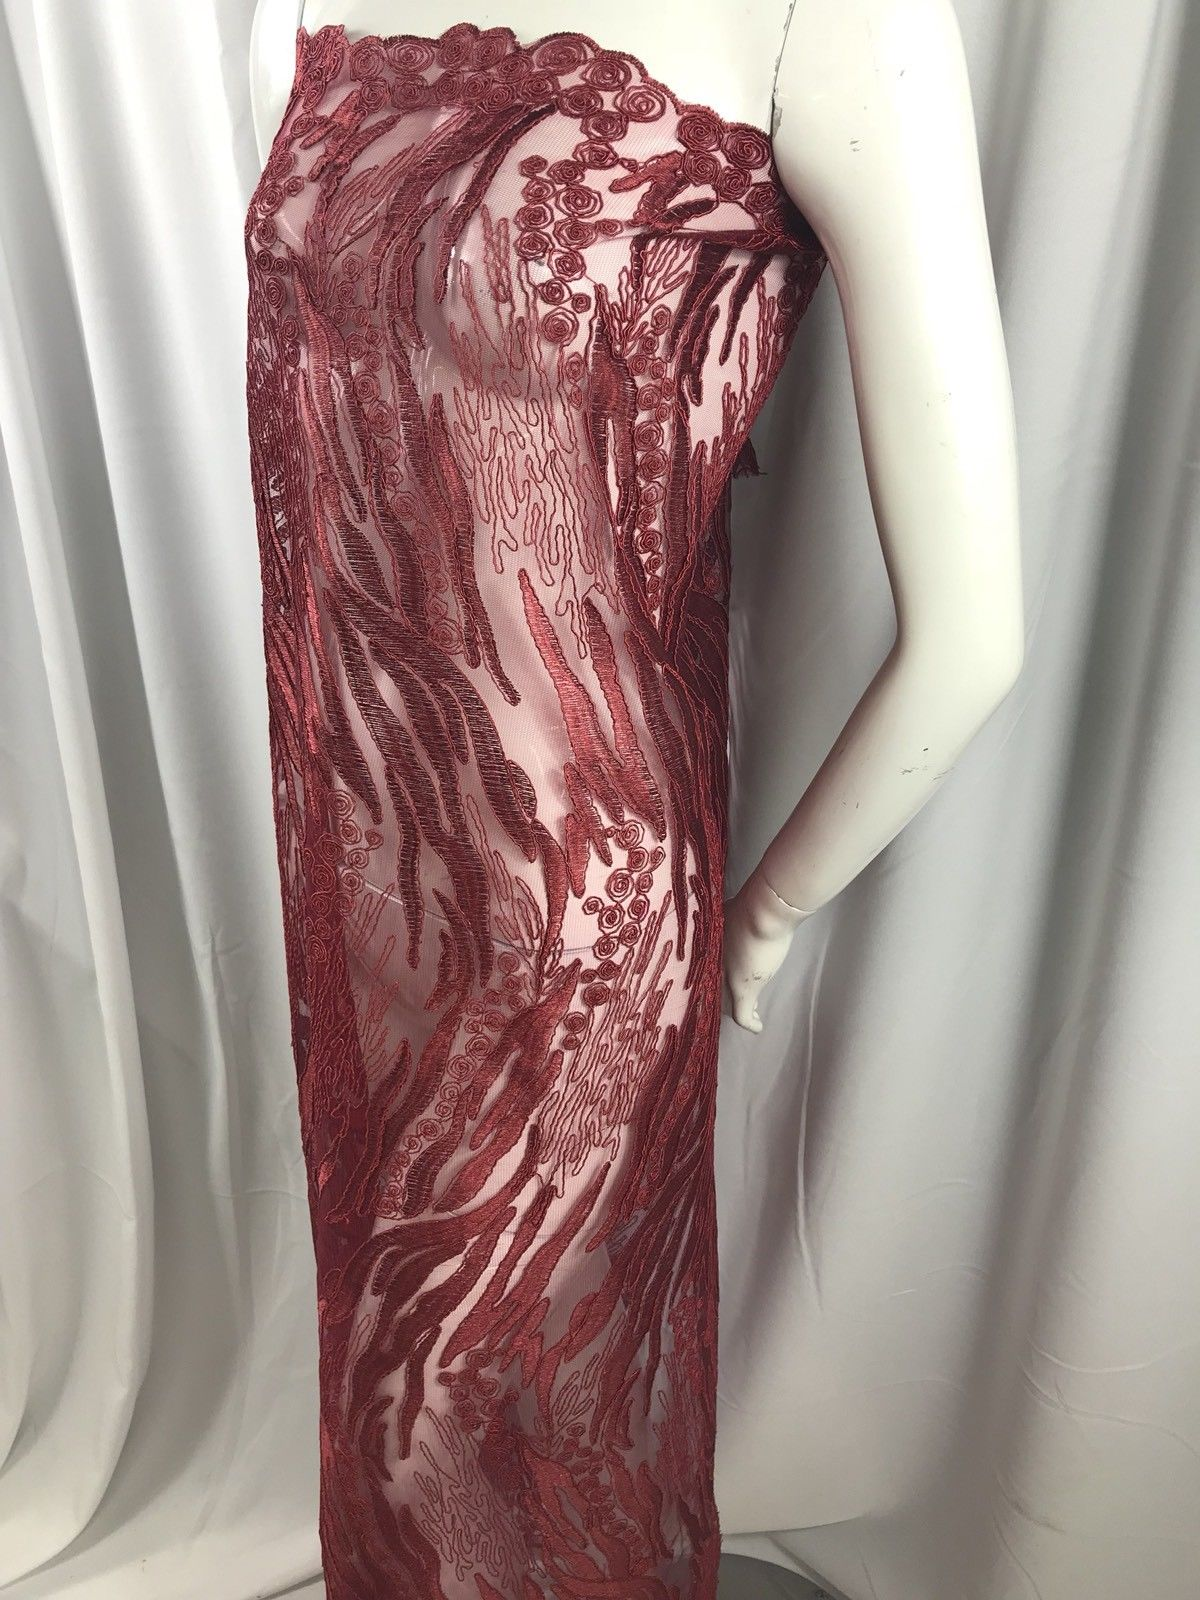 Lace fabric - Burgundy Flower Mesh Dress Embroidered Bridal Wedding By The Yard - KINGDOM OF FABRICS